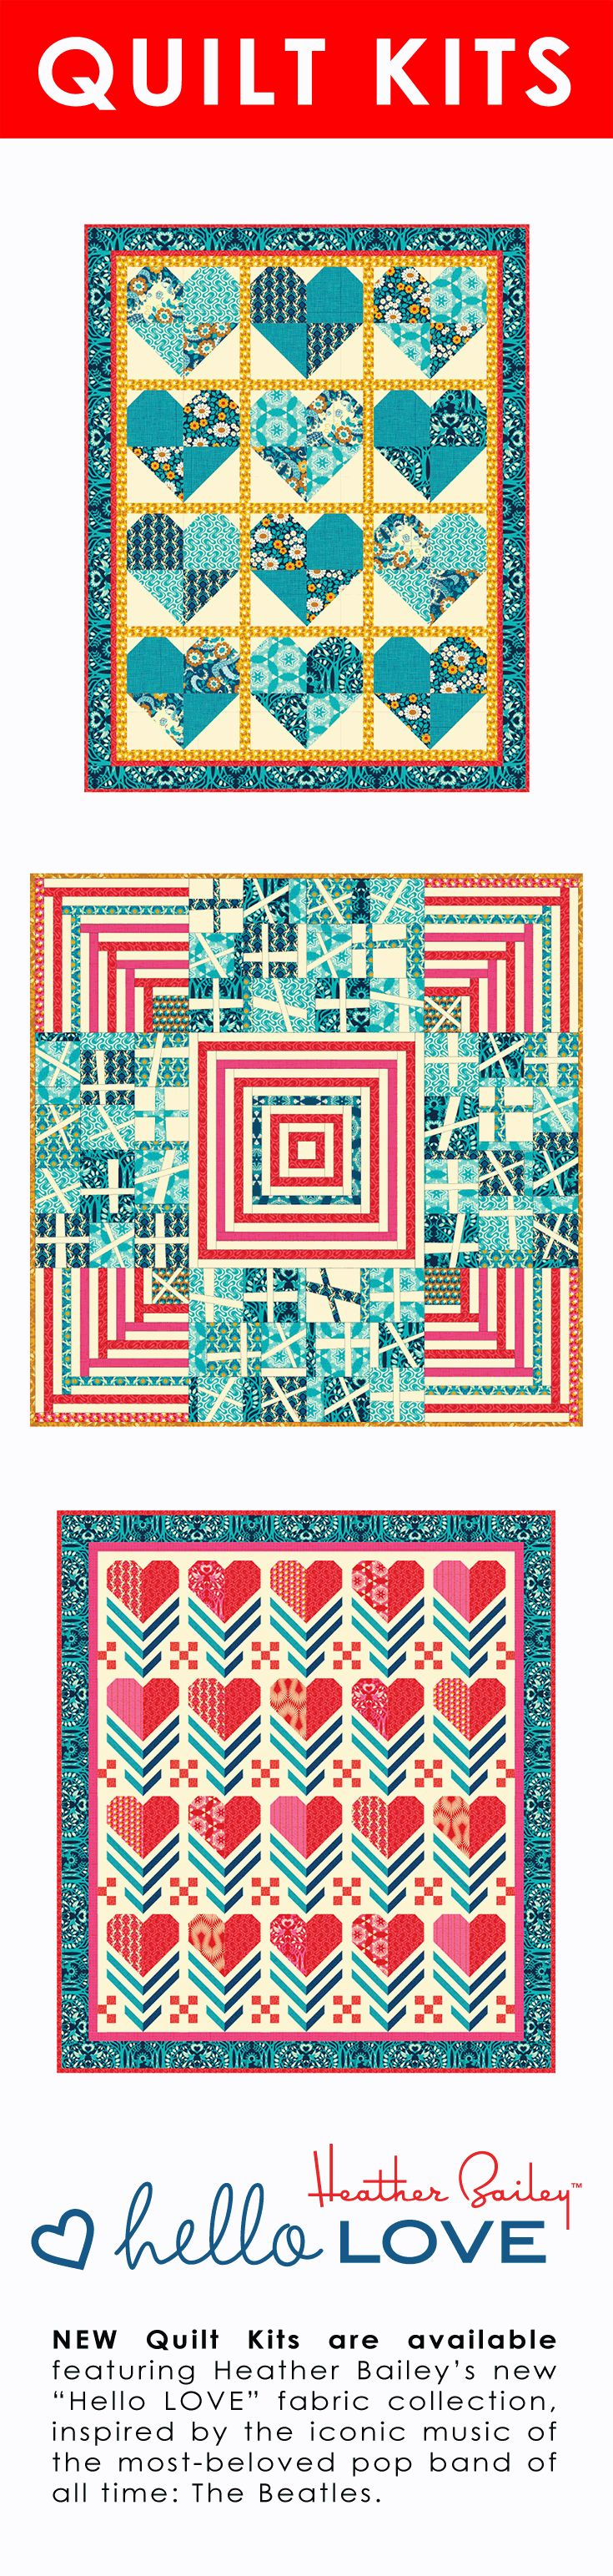 "Heather Bailey Quilt Kits featuring Heather's ""Hello LOVE"" fabric collection with Free Spirit Fabric. Each kit includes the materials needed to make the exact quilts shown above. More info at Heather Bailey Store."